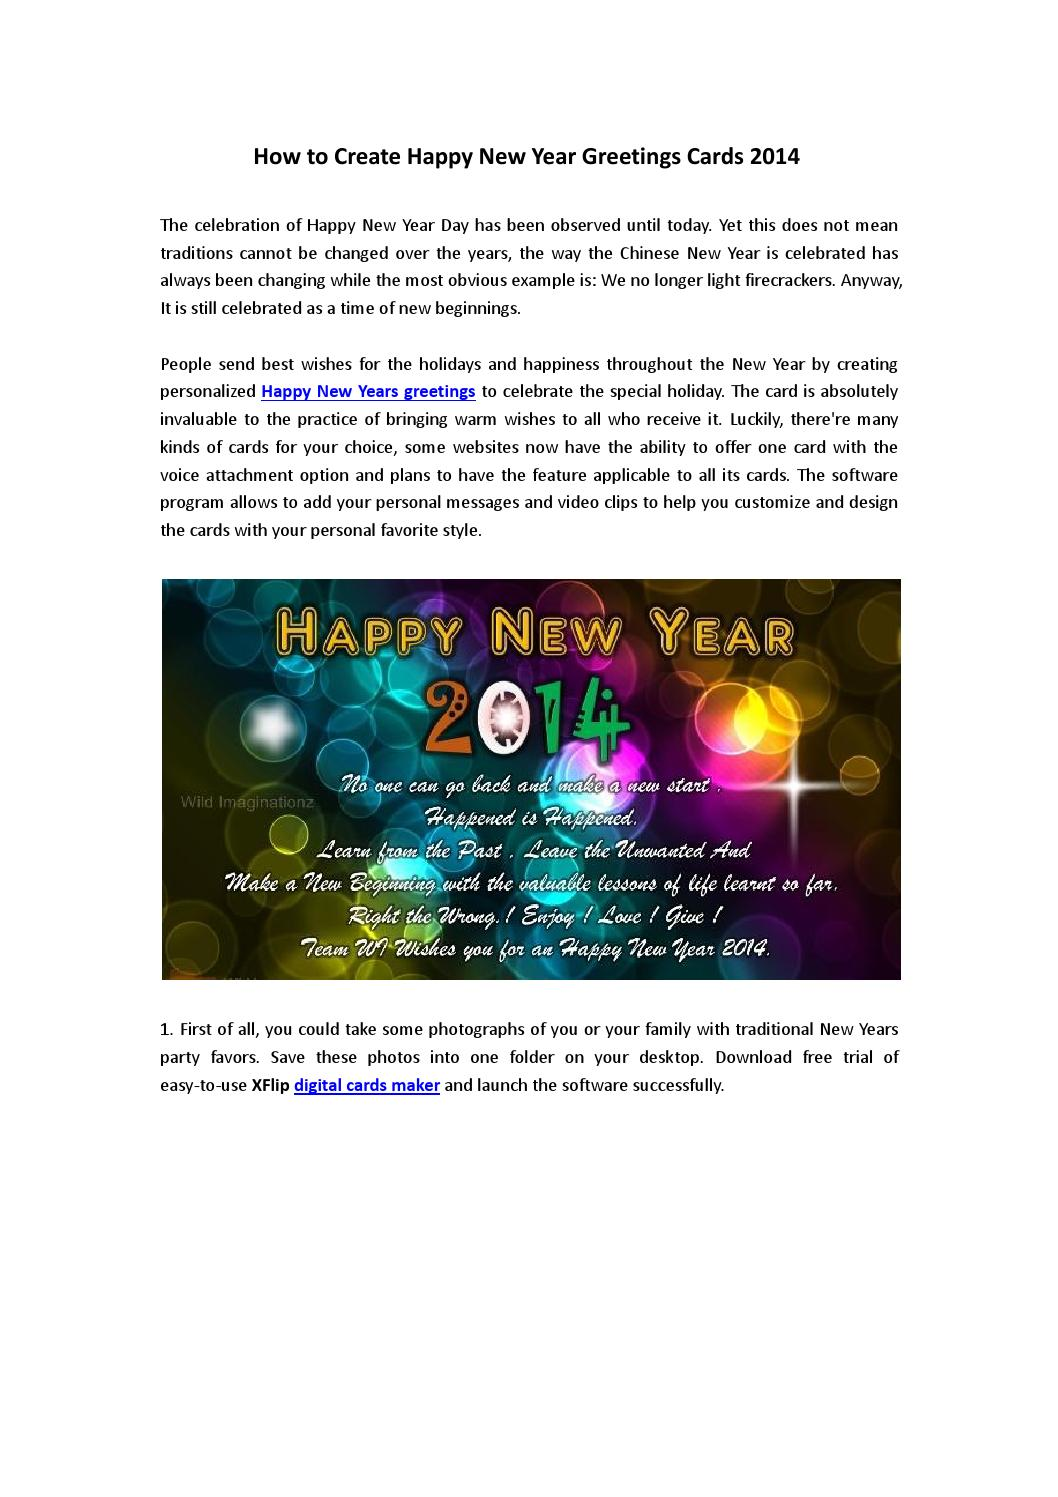 How To Make New Year Wishes Greeting Cards 2014 By Merry Flip Issuu